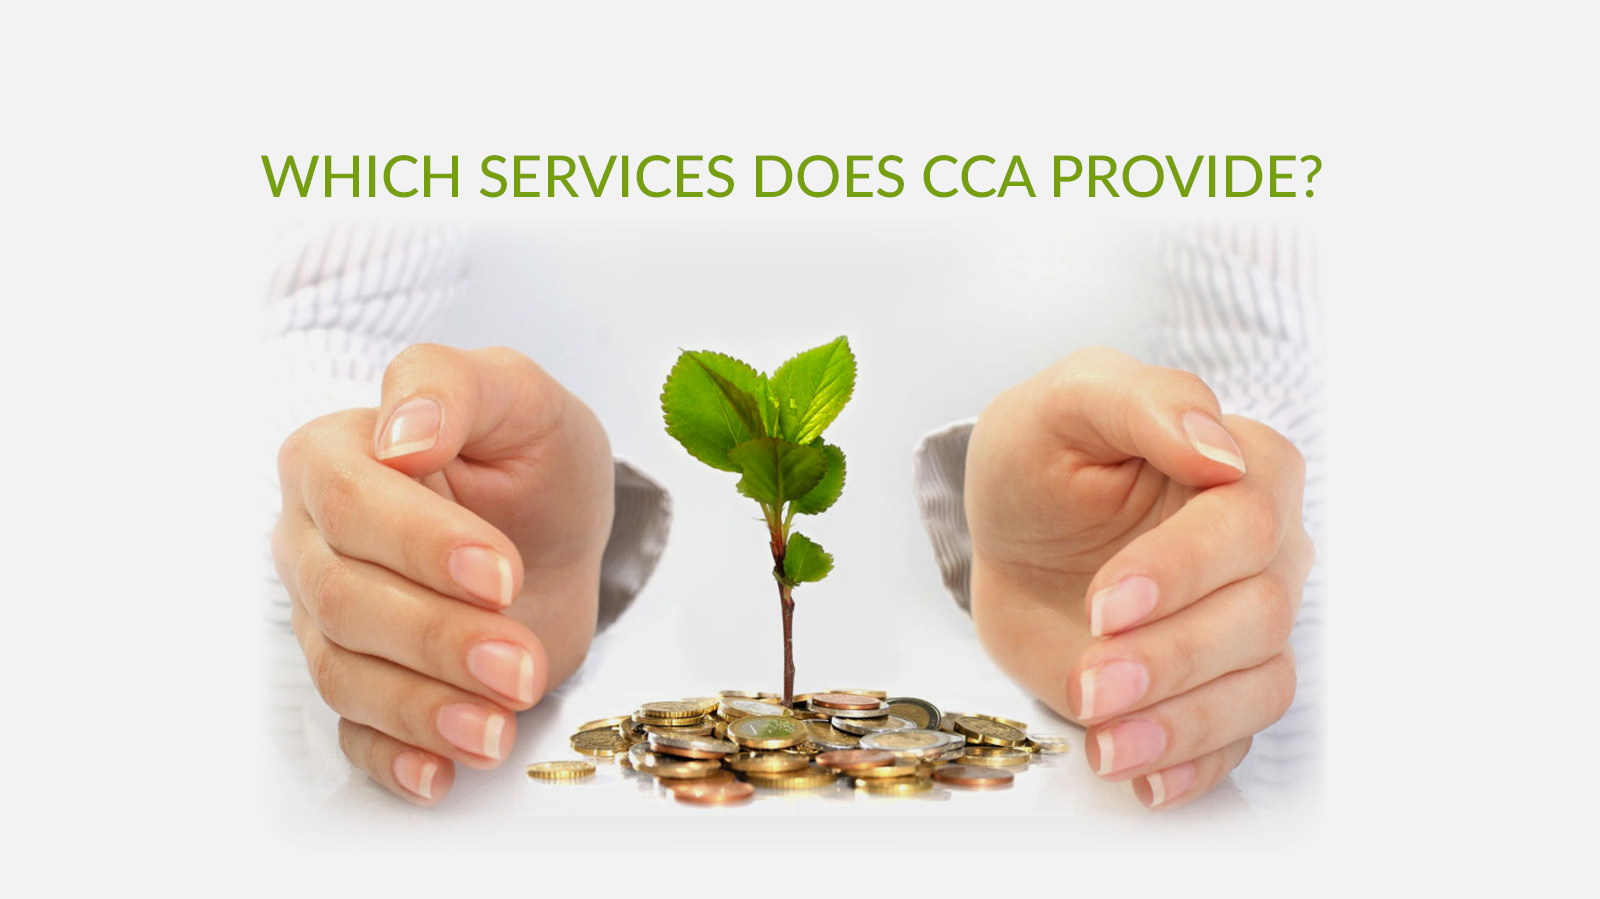 Which services does CCA provide?